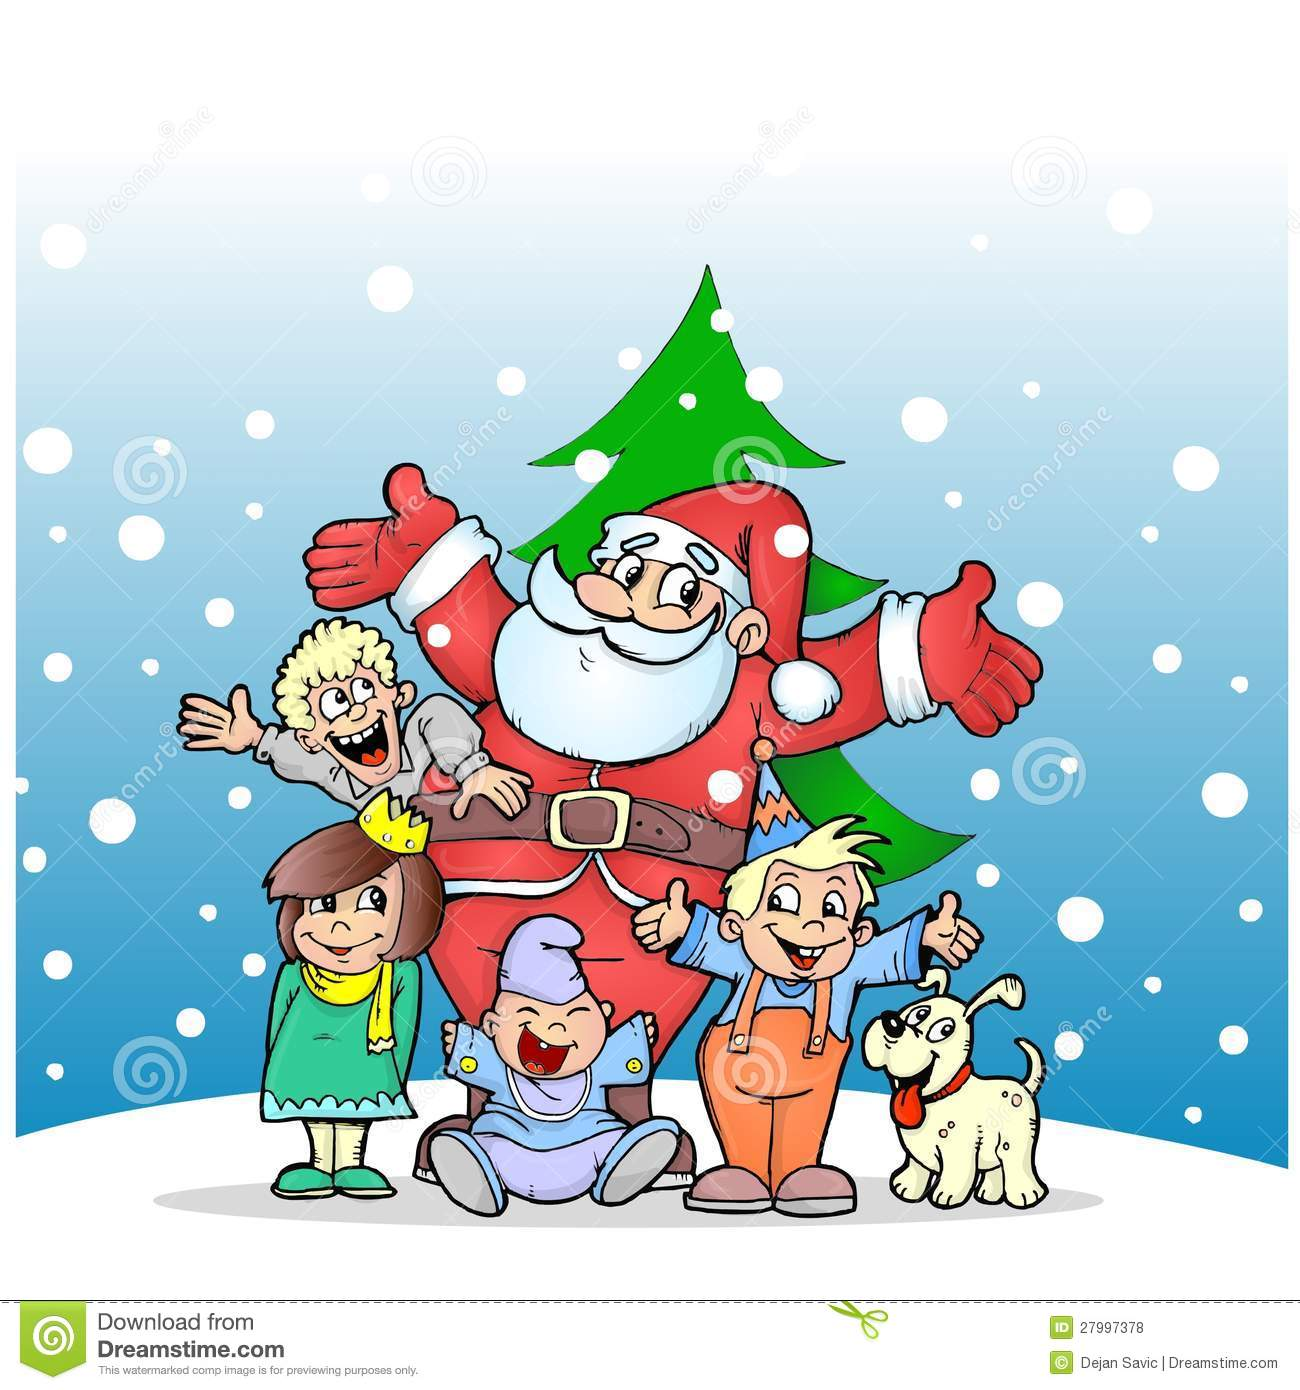 Santa Claus with kids and dog